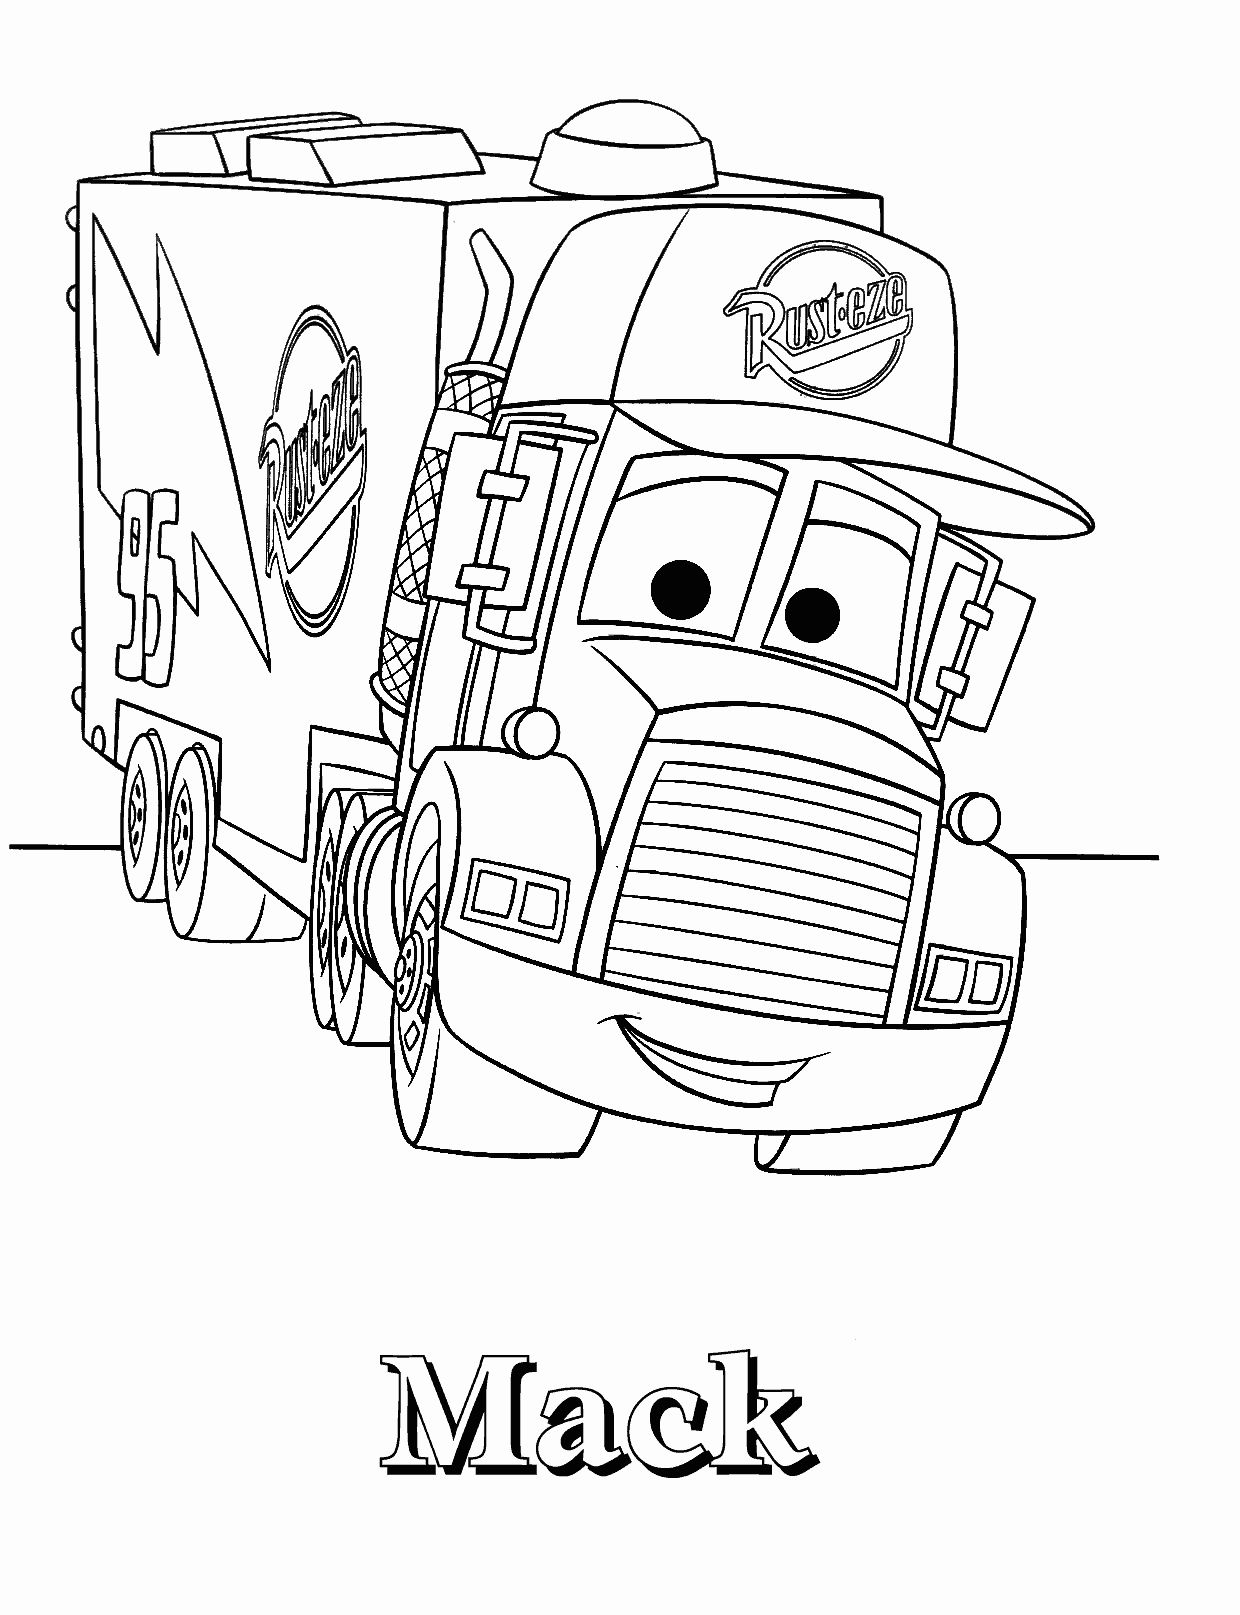 Lighting Mcqueen Coloring Page New Printable Lightning Mcqueen Coloring Pages Free In 2020 Cars Coloring Pages Disney Coloring Pages Truck Coloring Pages